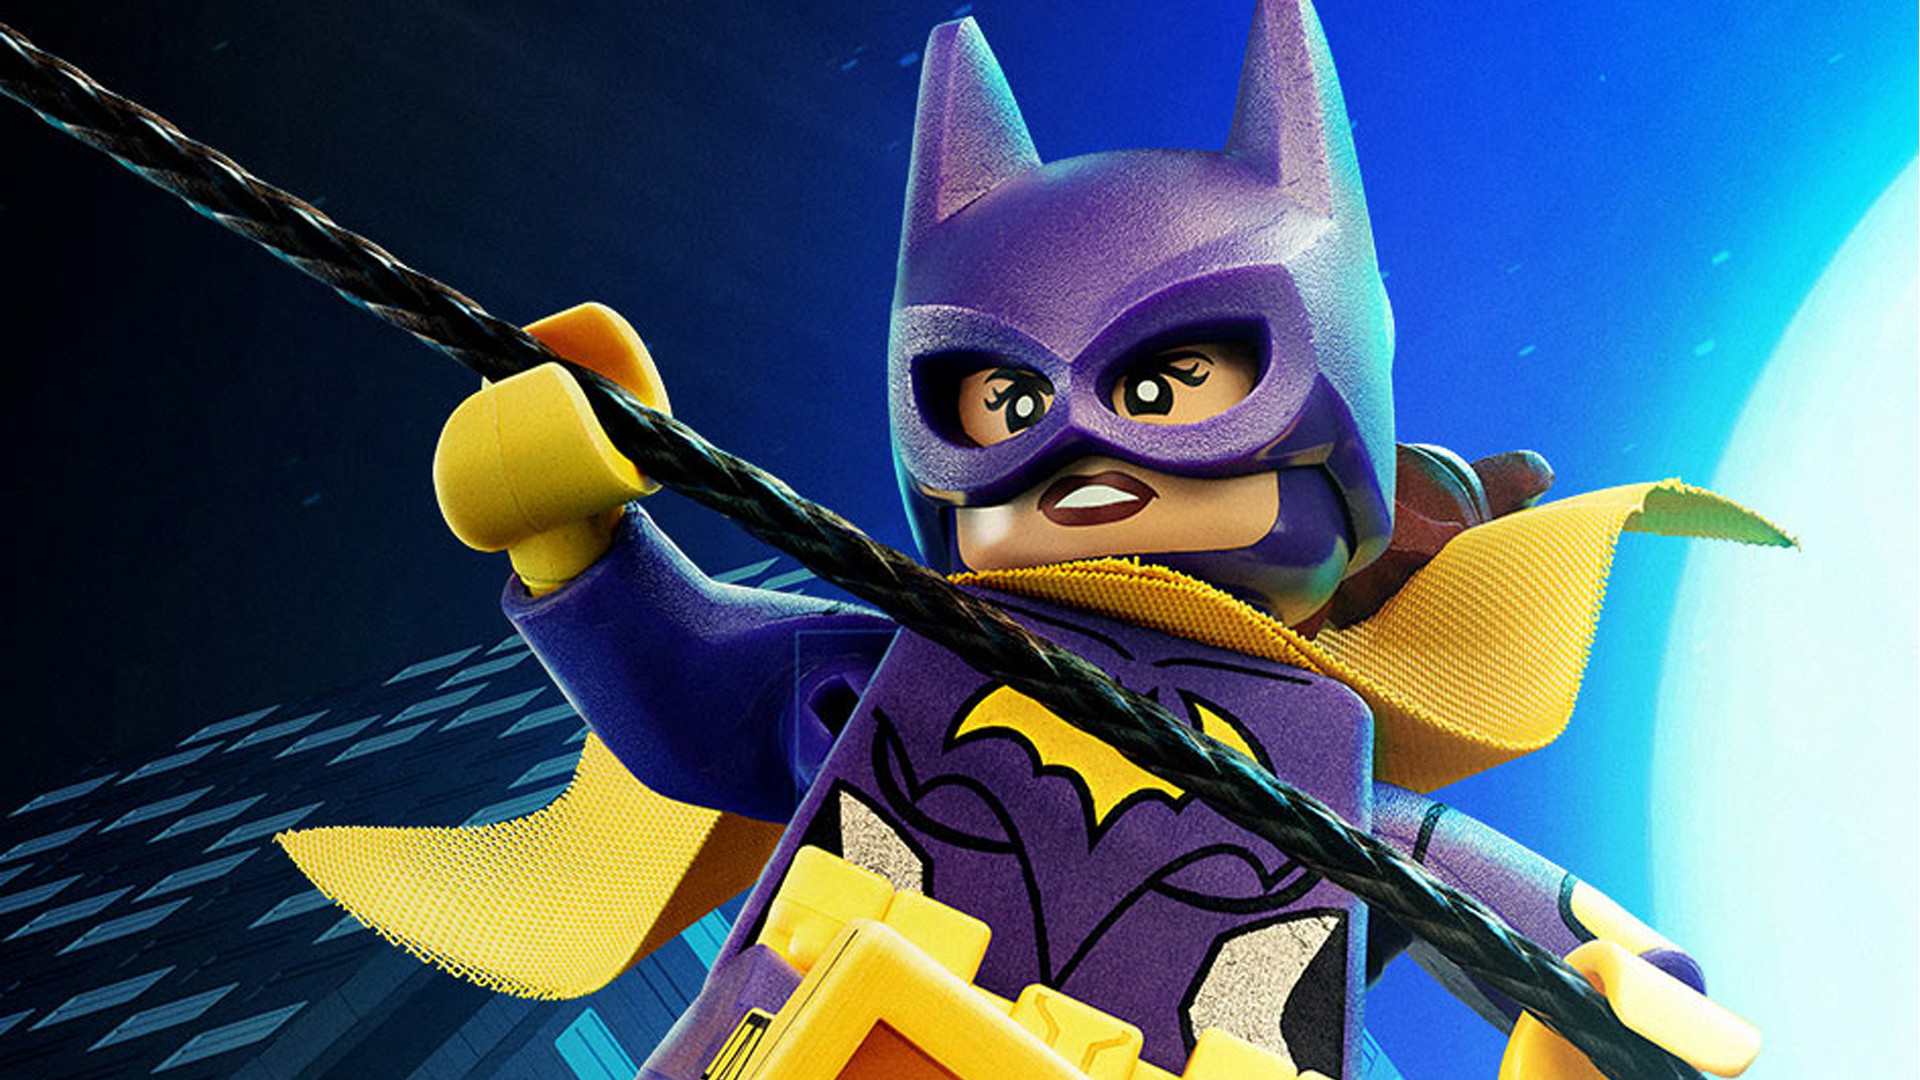 1920x1080 Batgirl isn't taking any of Batman's nonsense in this new TV spot for The  LEGO Batman Movie. Along with some hilarious jabs at Batman—we should all  call him ...